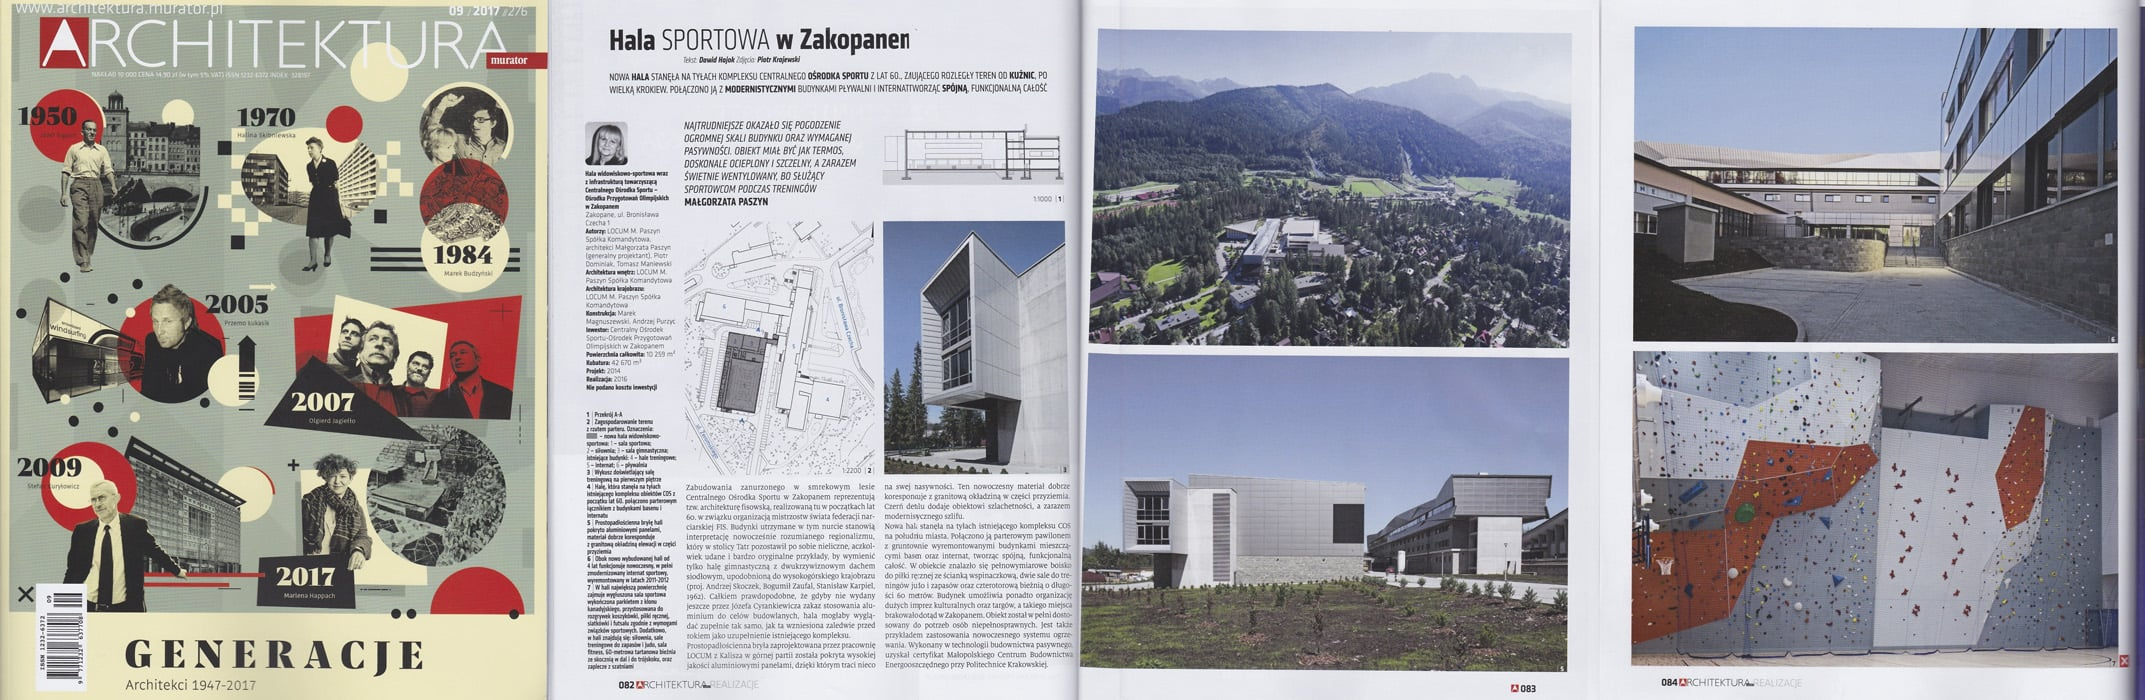 Sports hall of the Central Sport Center in Zakopane - Architektura Murator 09/2017